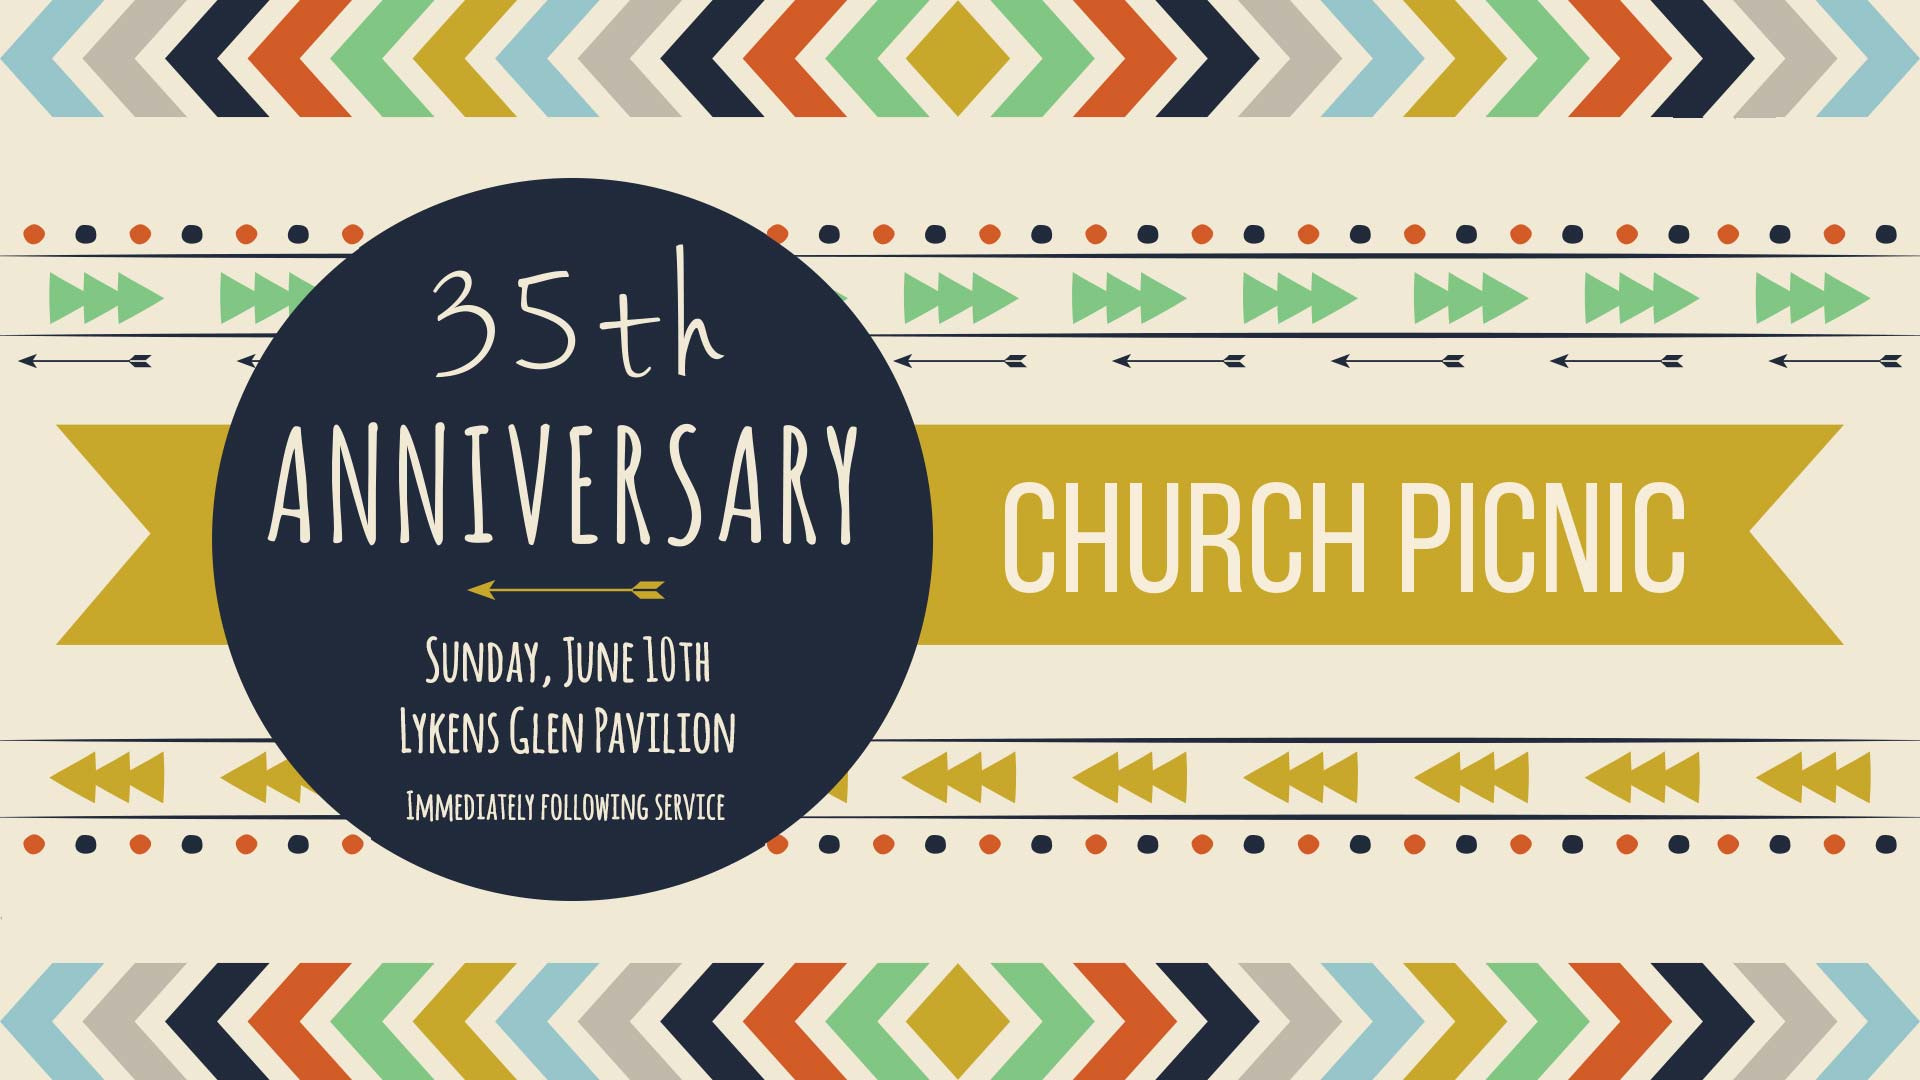 35th Anniversary Church Picnic